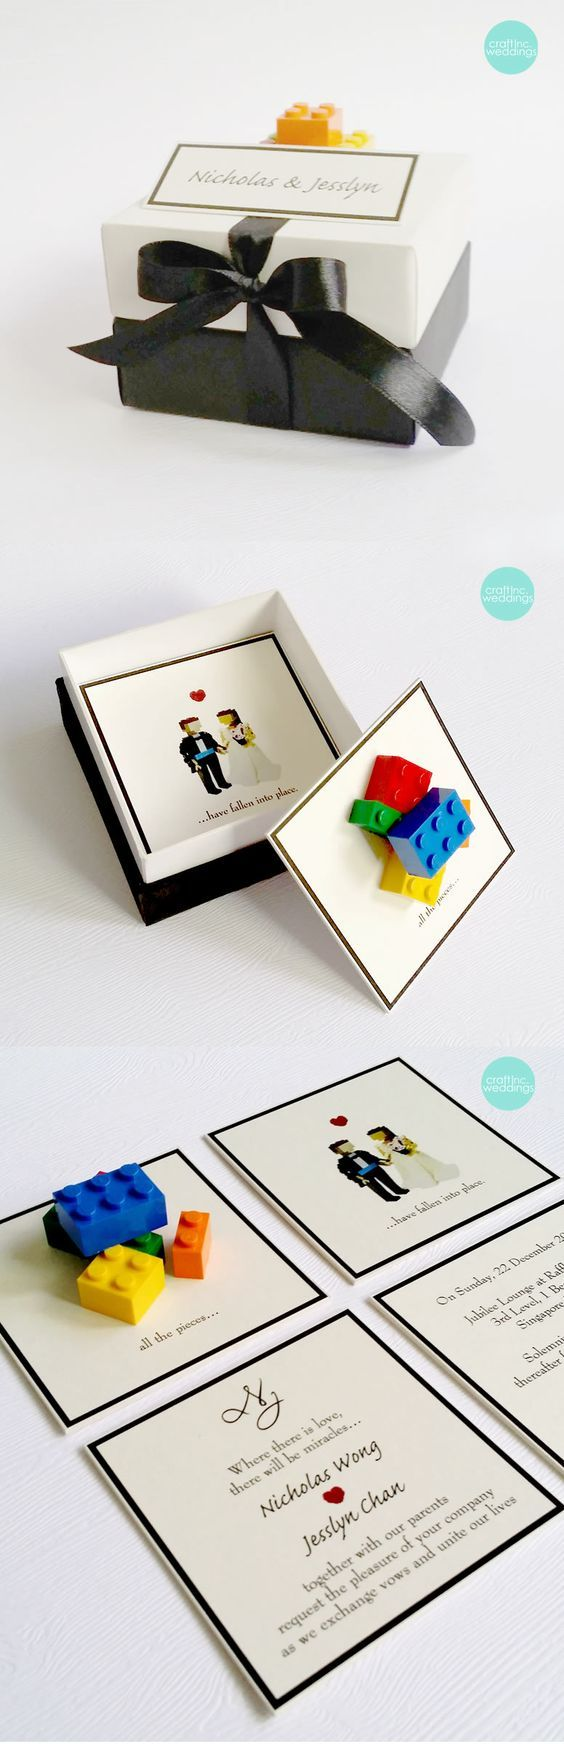 Lego Invite in the Box - Lego Themed Wedding Invitations and Other Decoration Ideas - EverAfterGuide